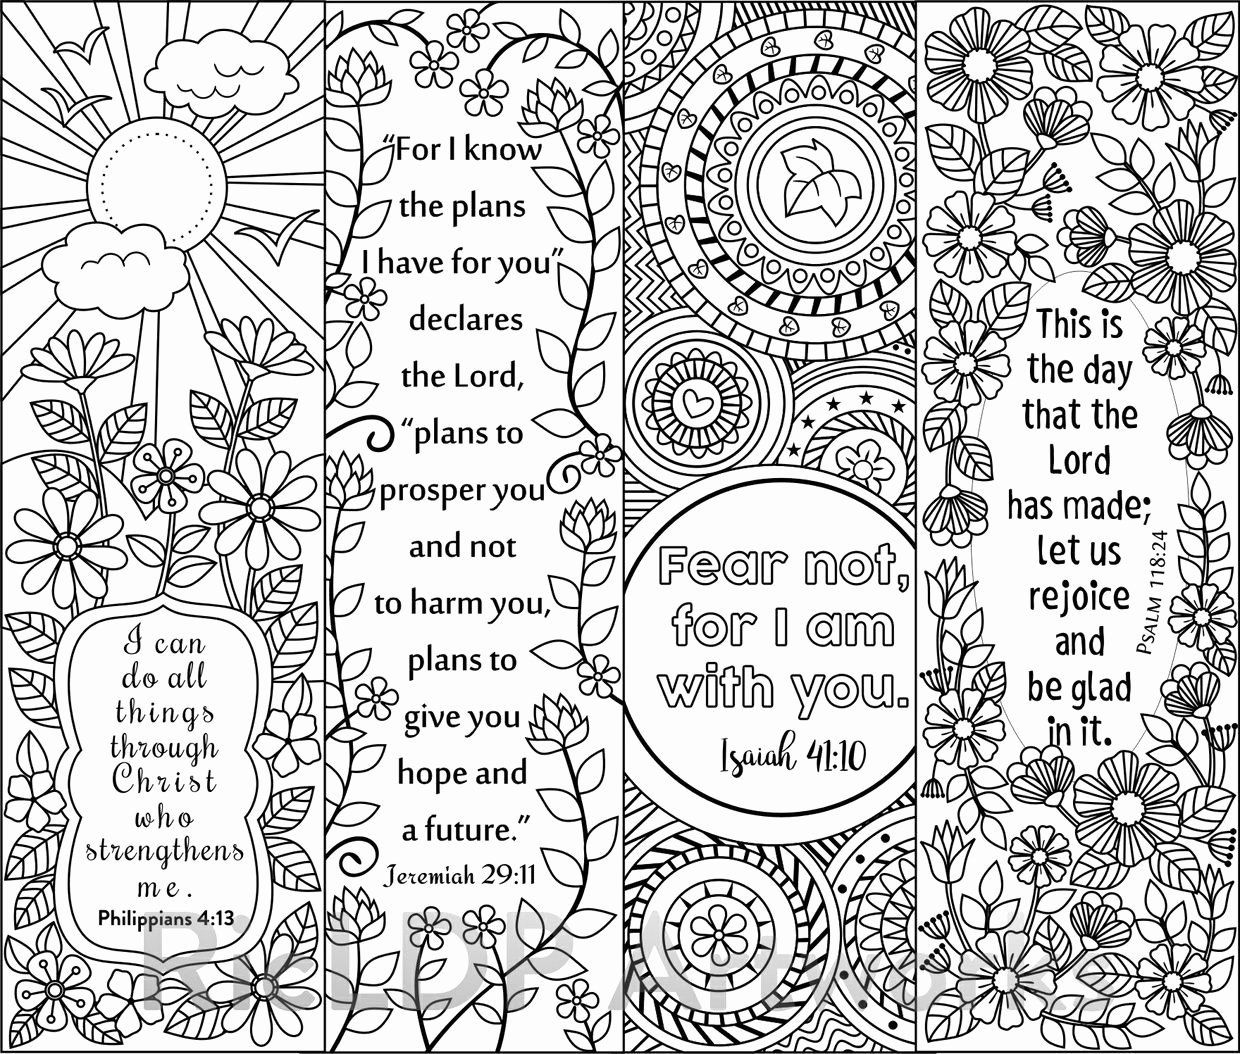 Color By Number Christian Coloring Sheets Coloring Pages Gallery Bible Verse Coloring Page Coloring Bookmarks Bible Coloring Pages